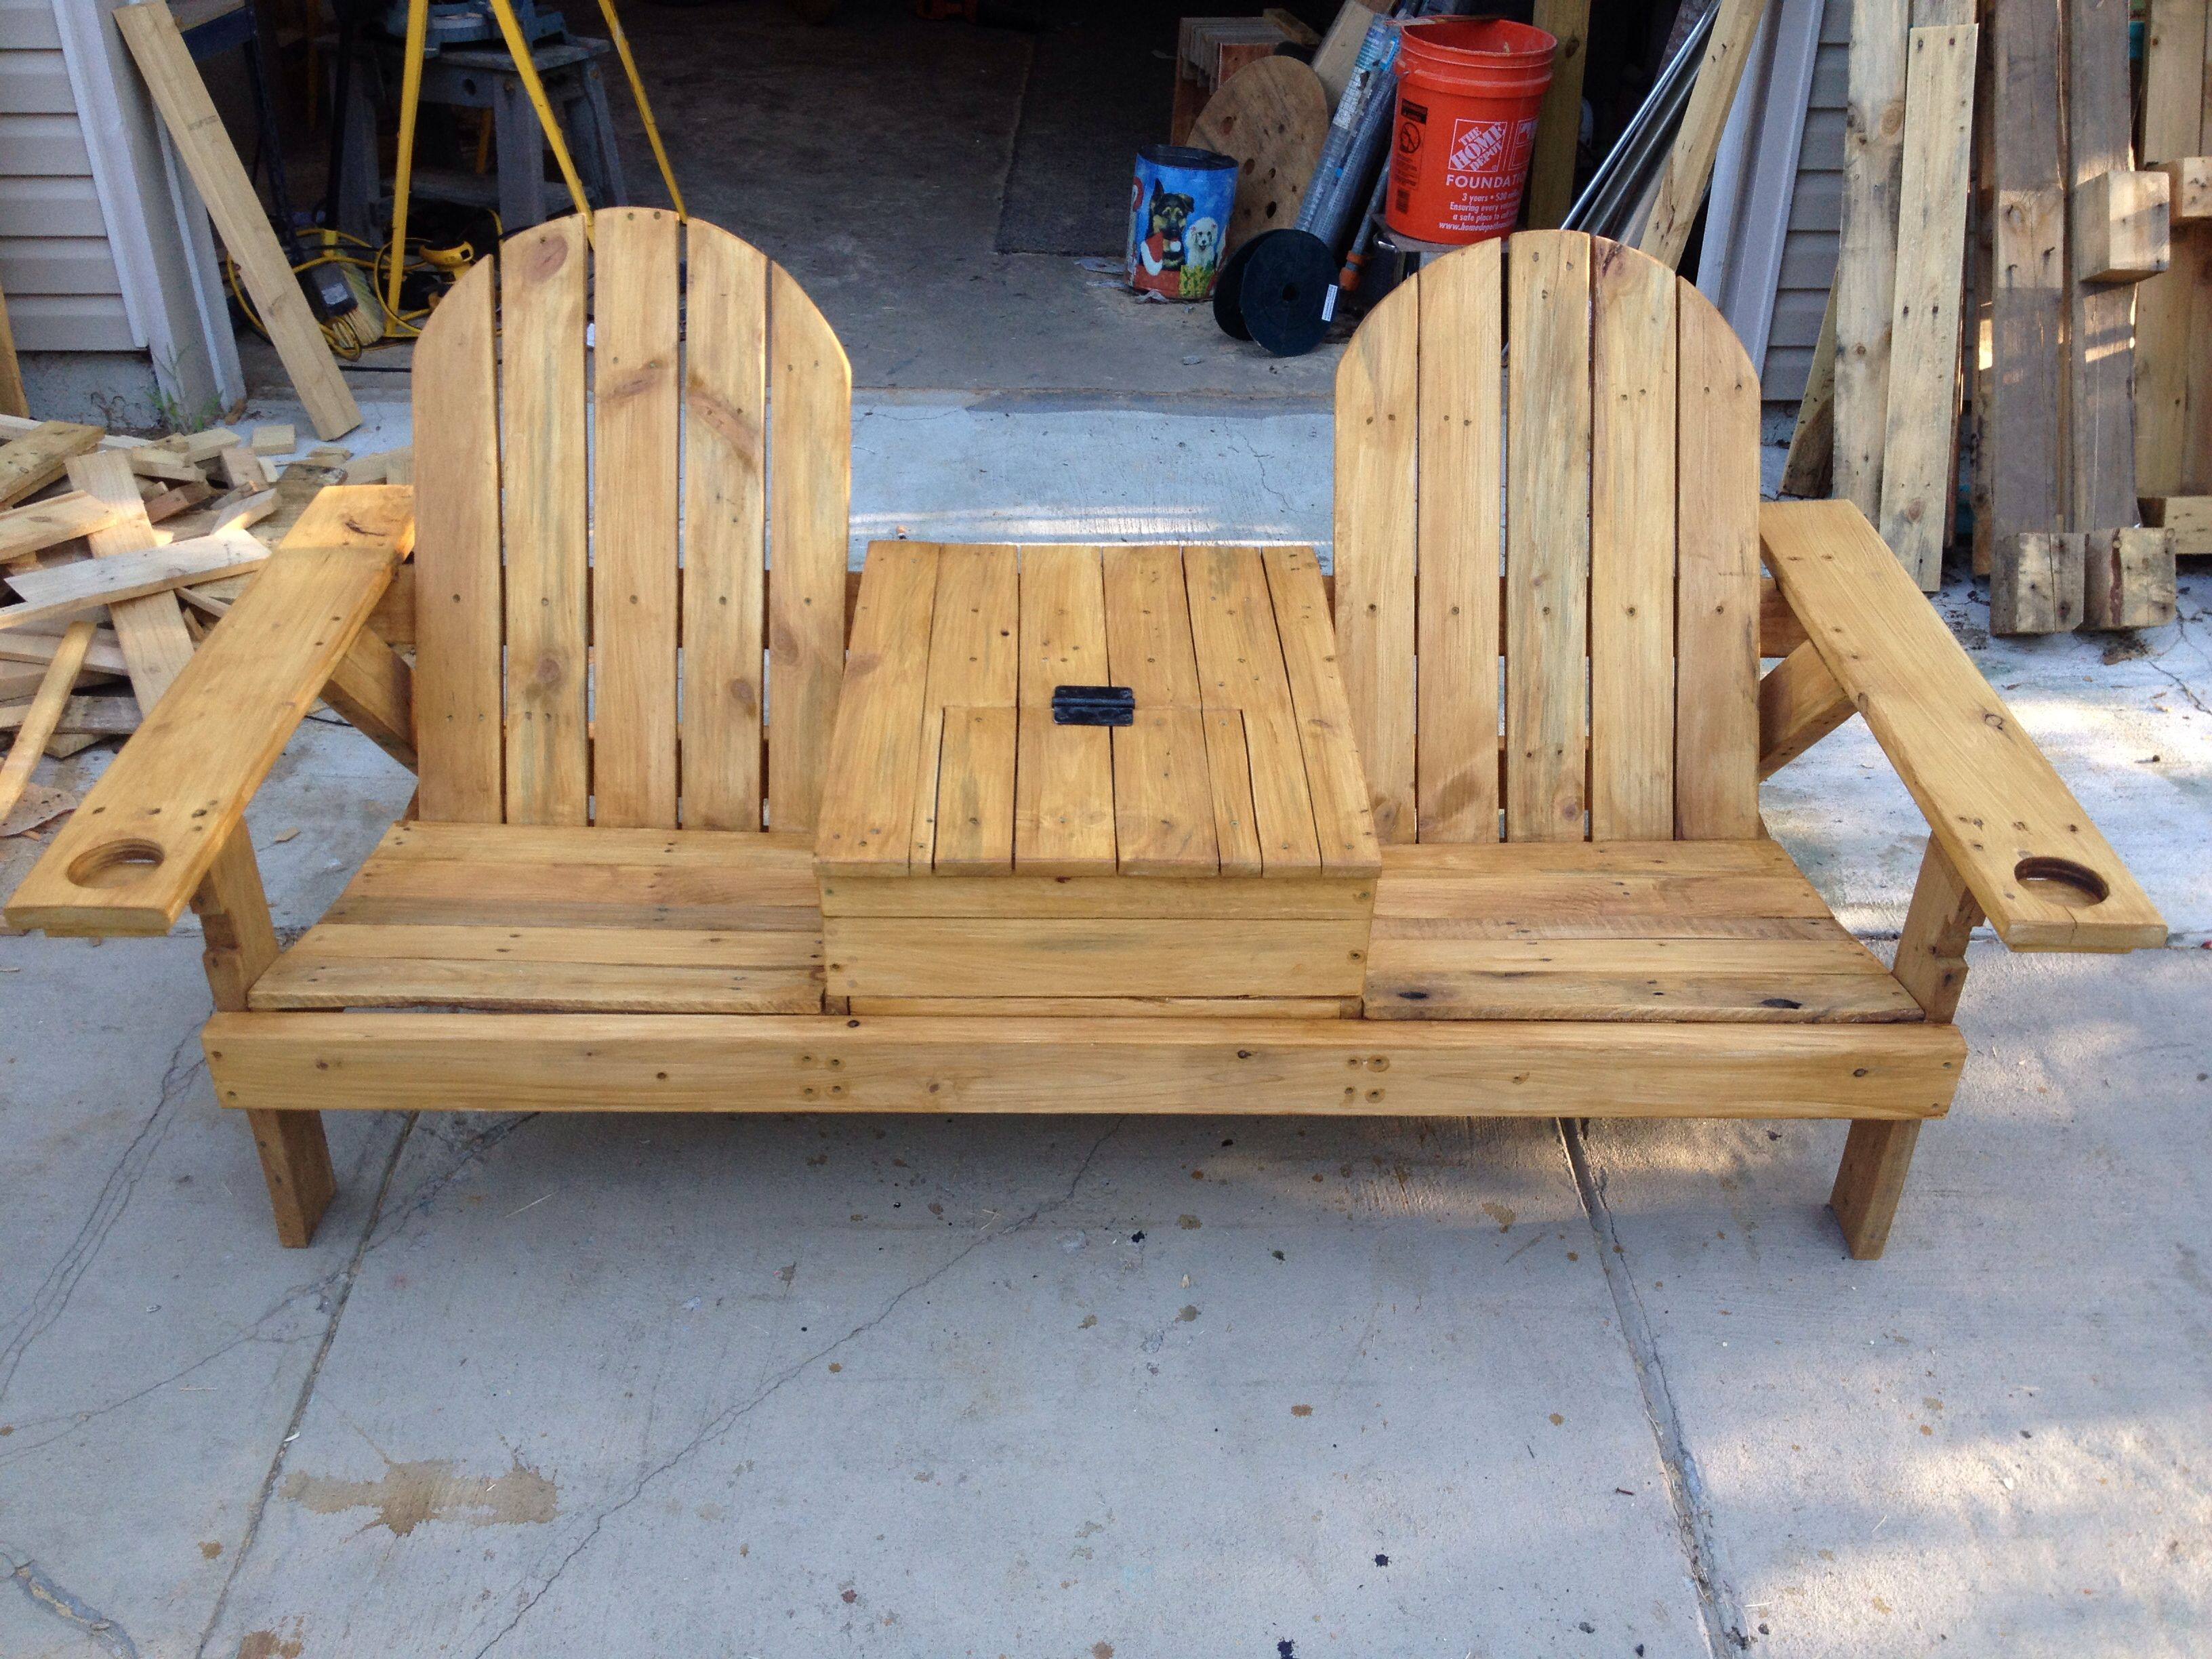 Pallet Wood Bench With Cooler Wooden Lounge Chair Pallet